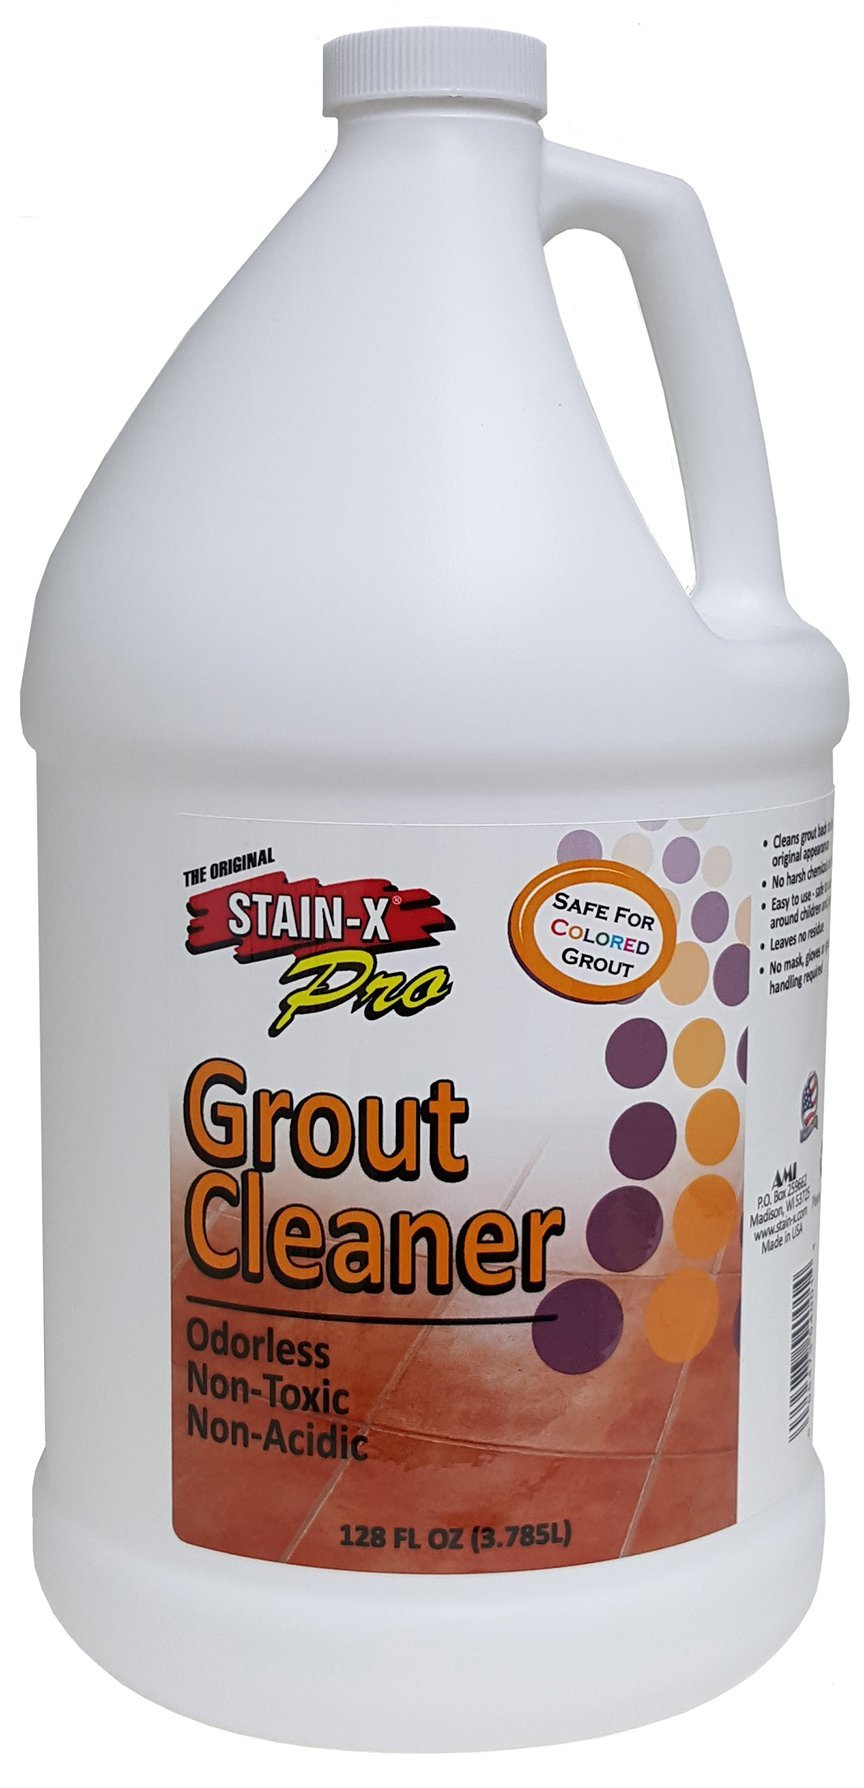 STAIN-X PRO Grout Cleaner - 128 oz (54001)